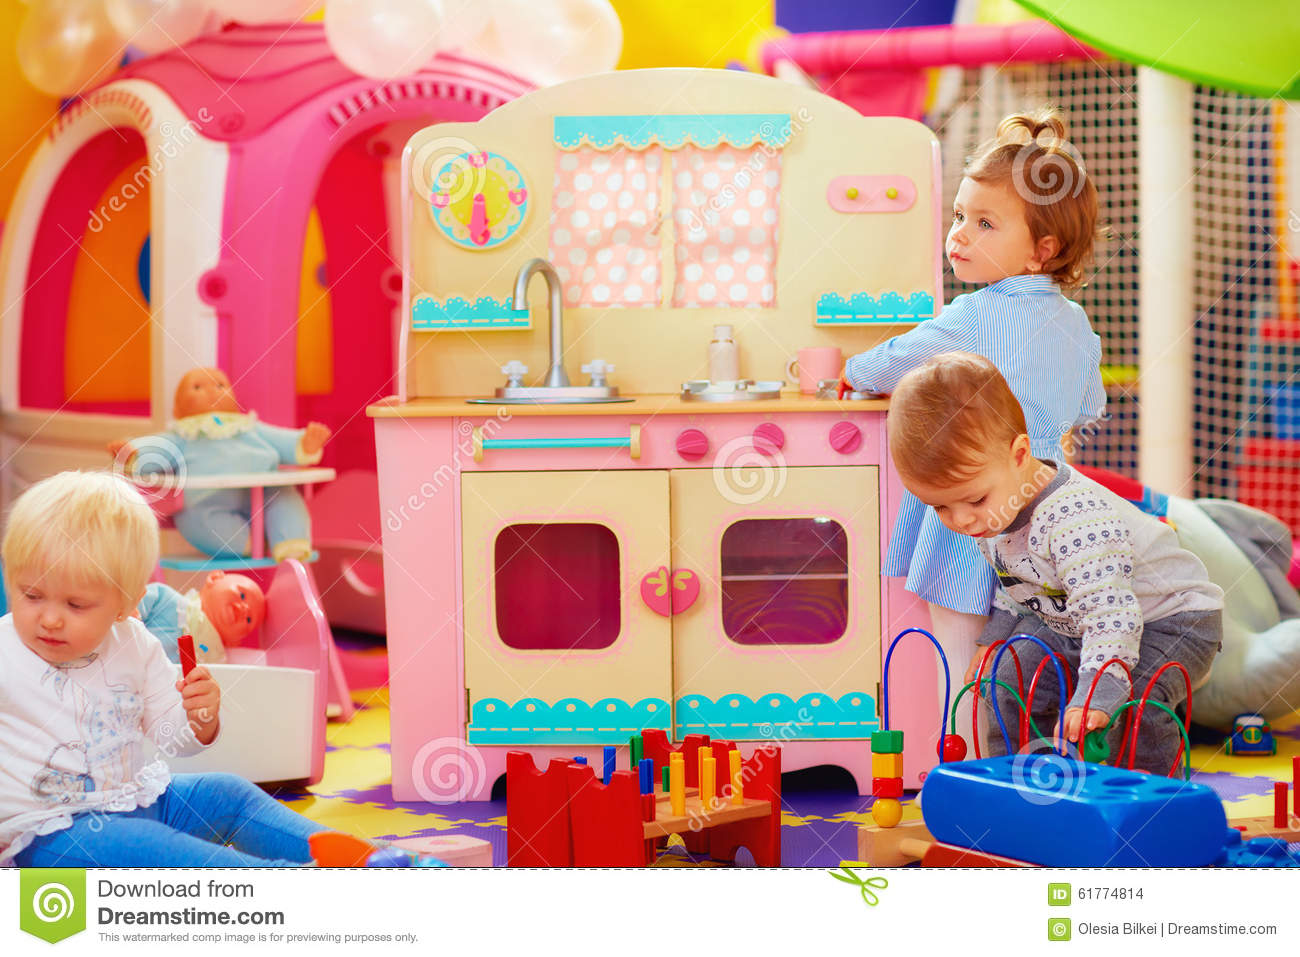 Kinder Garden: Cute Little Kids Playing With Toys In Nursery Group Of